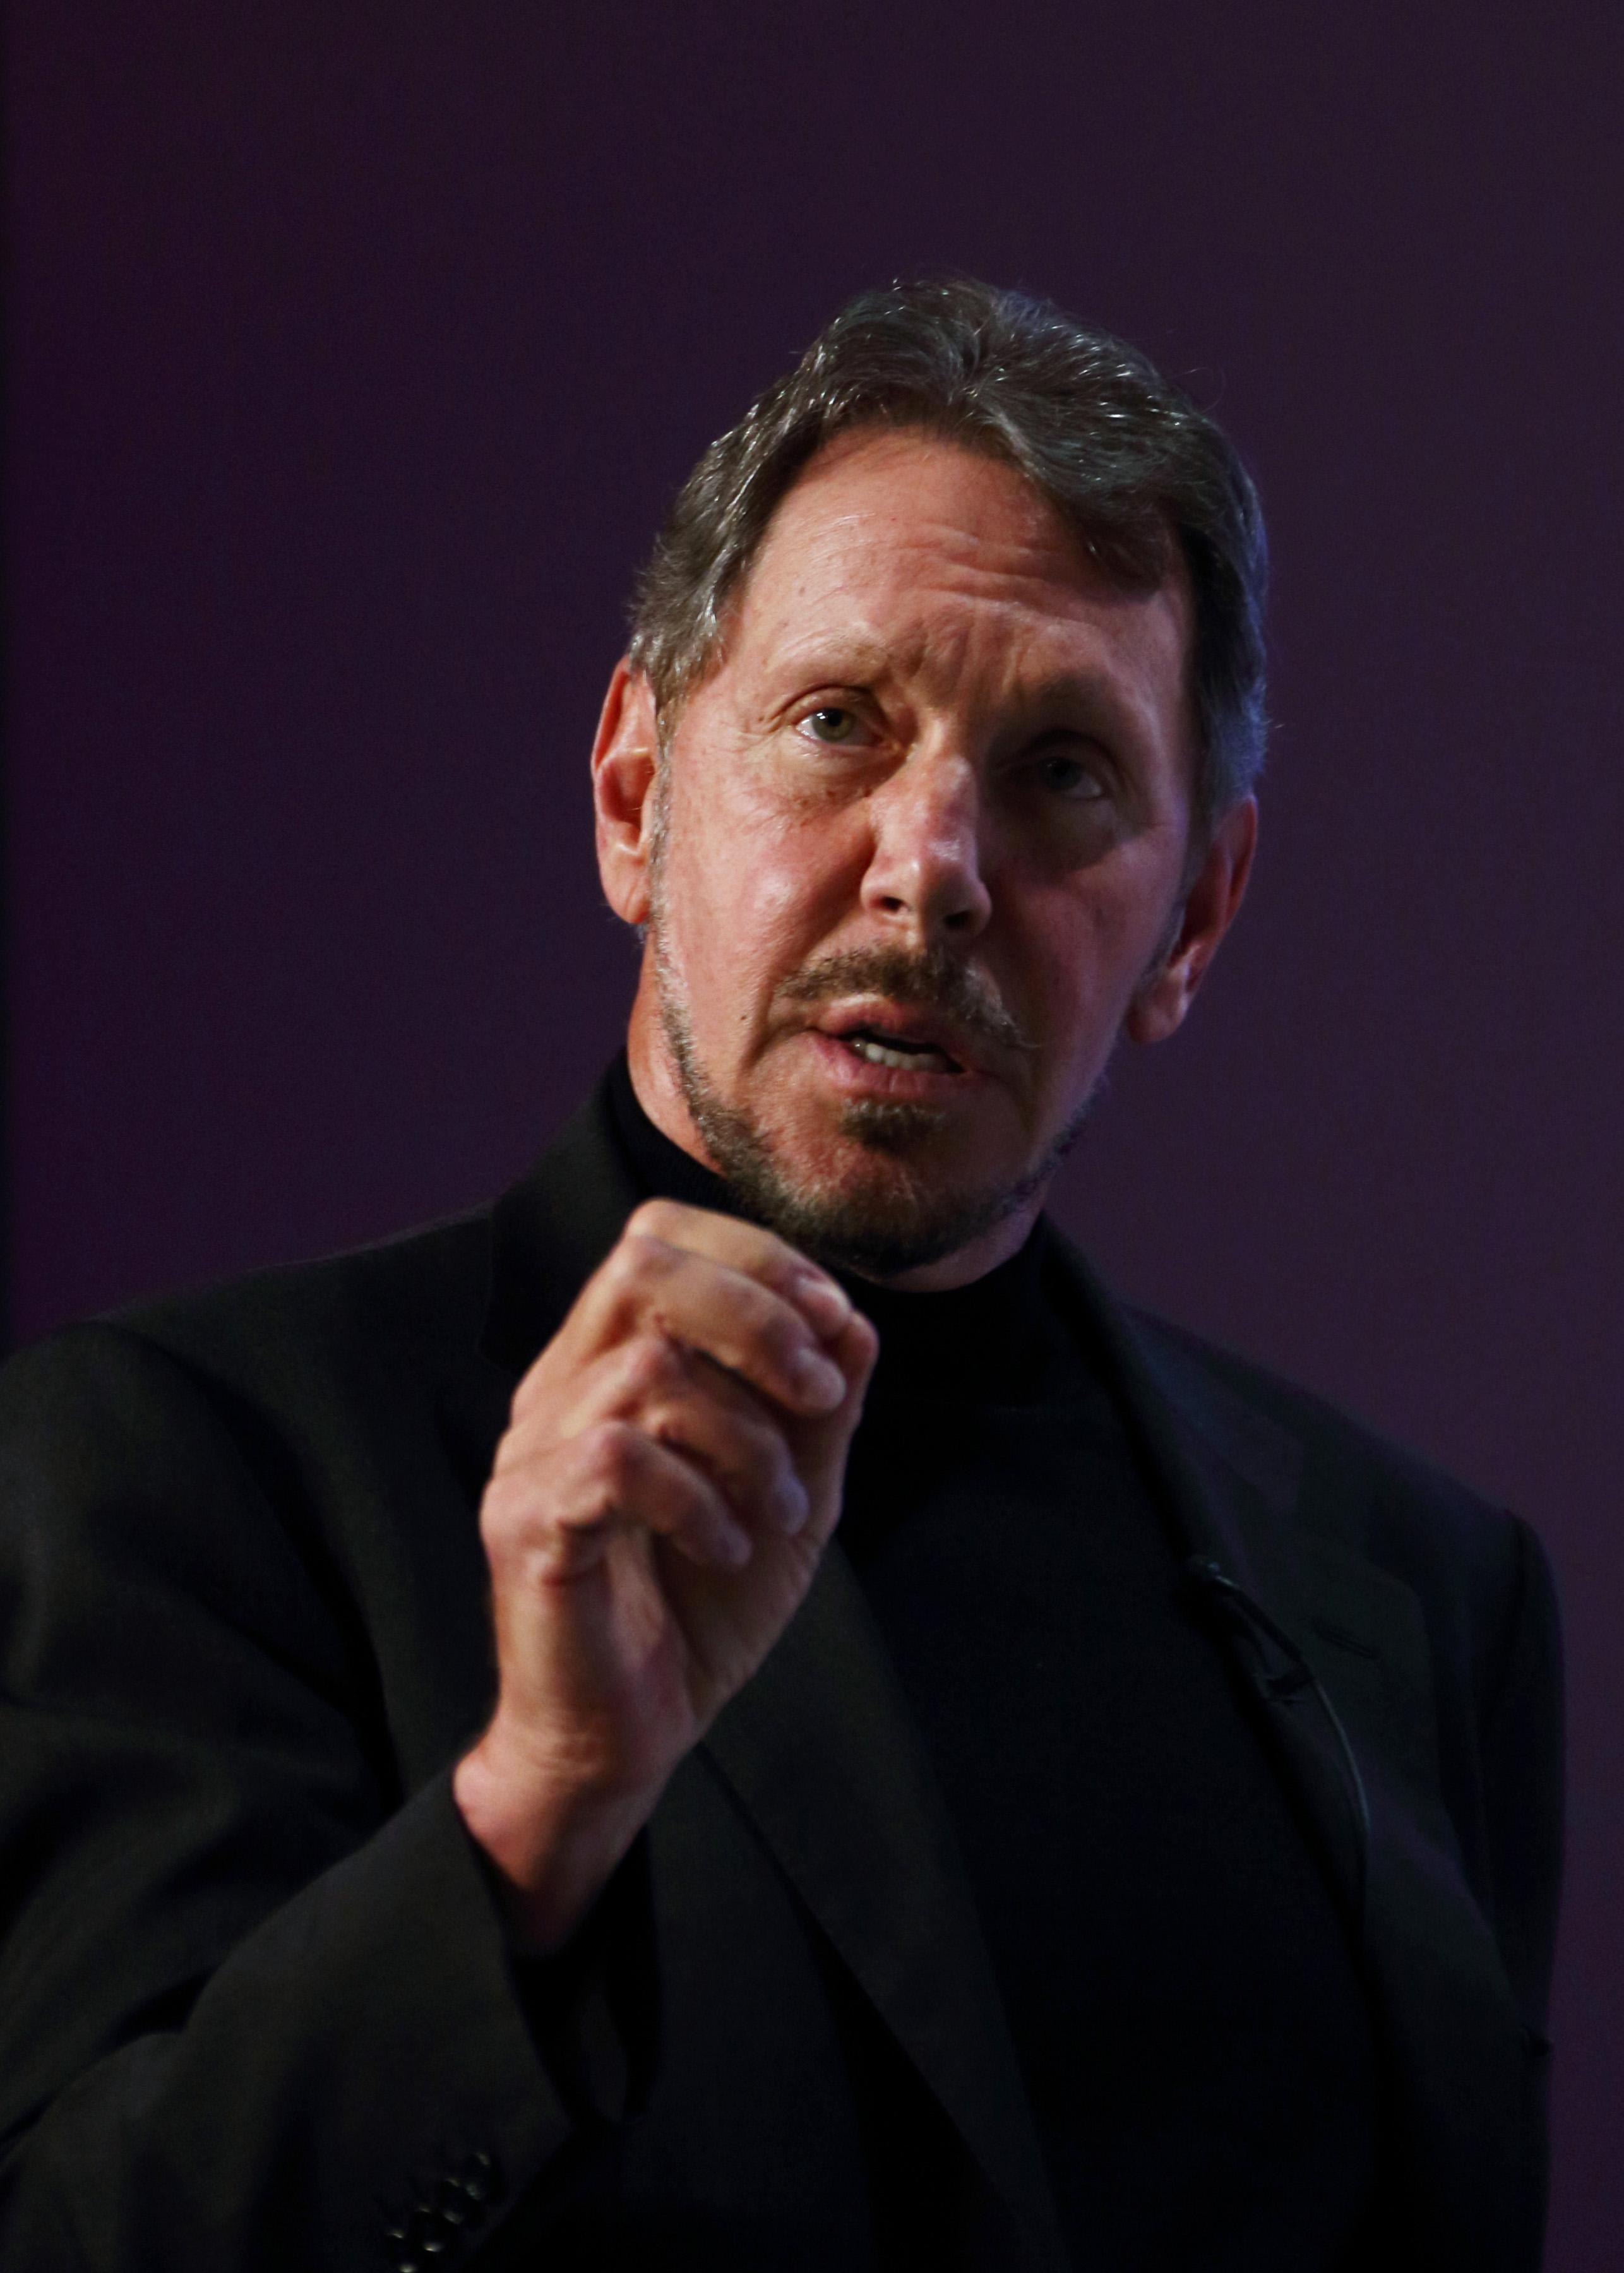 Larry Ellison, chief executive officer of Oracle Corp., makes a speech at the New Economy Summit 2014 in Tokyo on April 9, 2014.